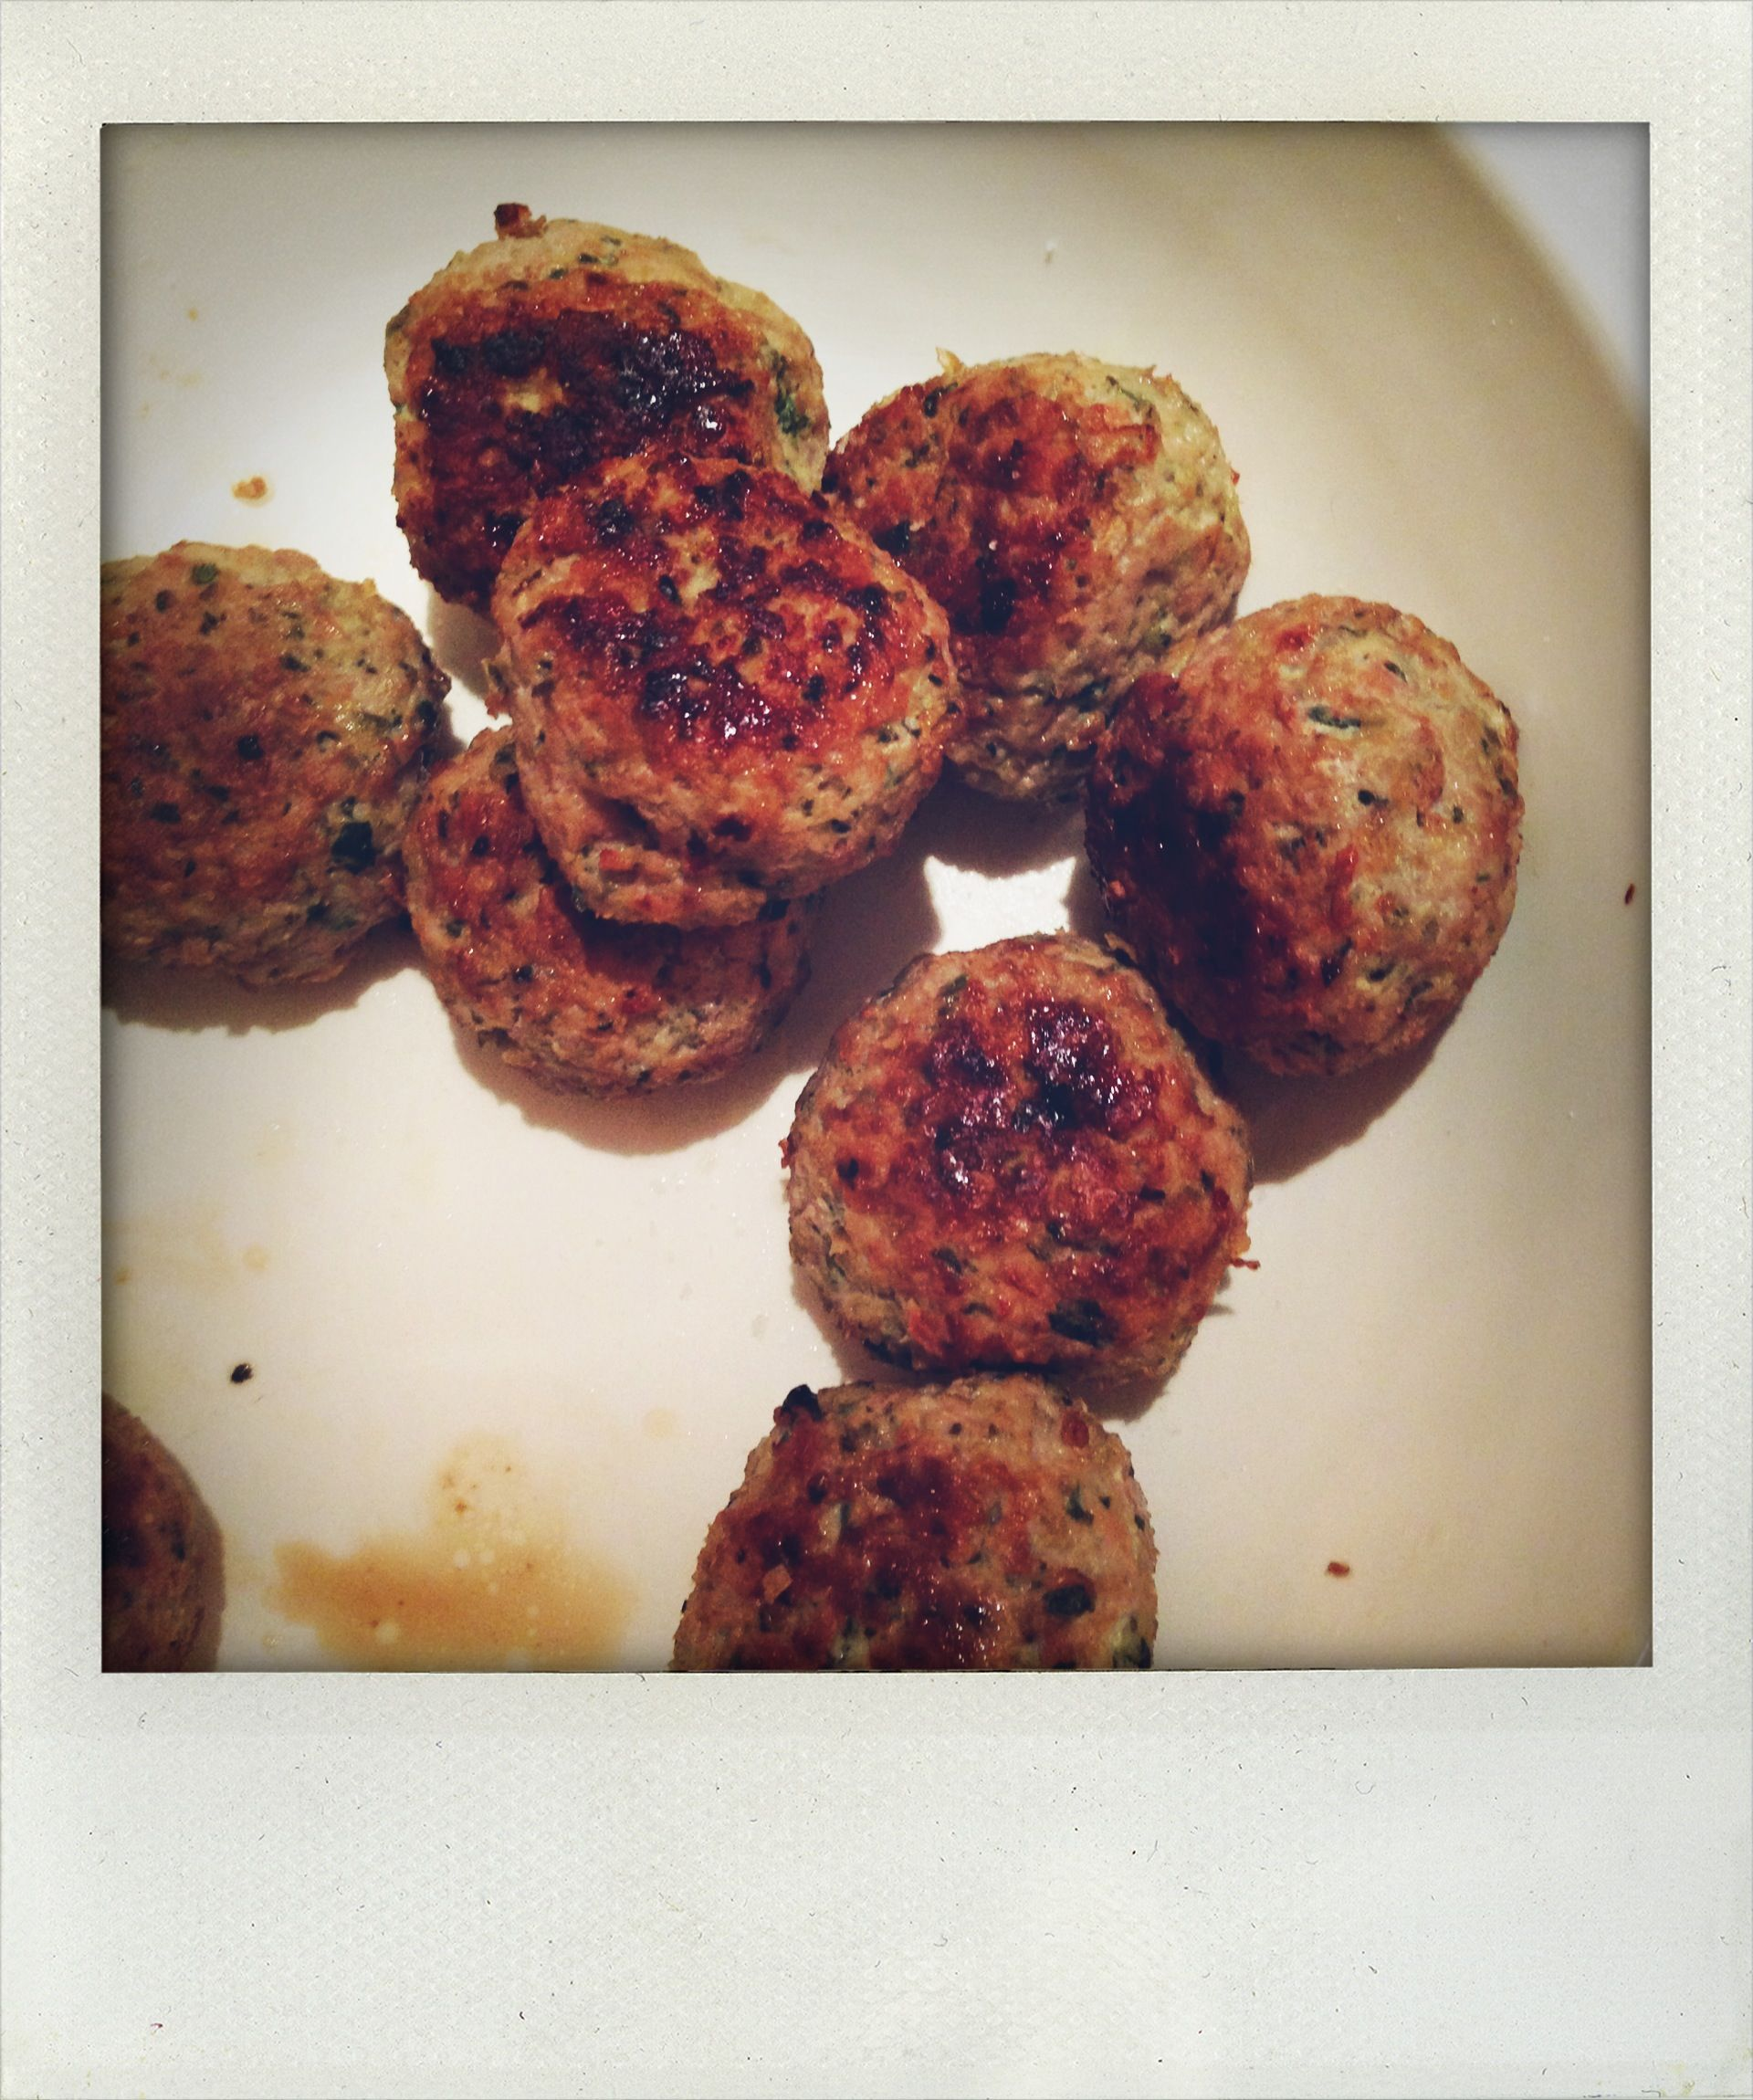 Day 13 dinner: Egg, cheese and breadcrumb free turkey meatballs (recipe coming soon in It's All Good).